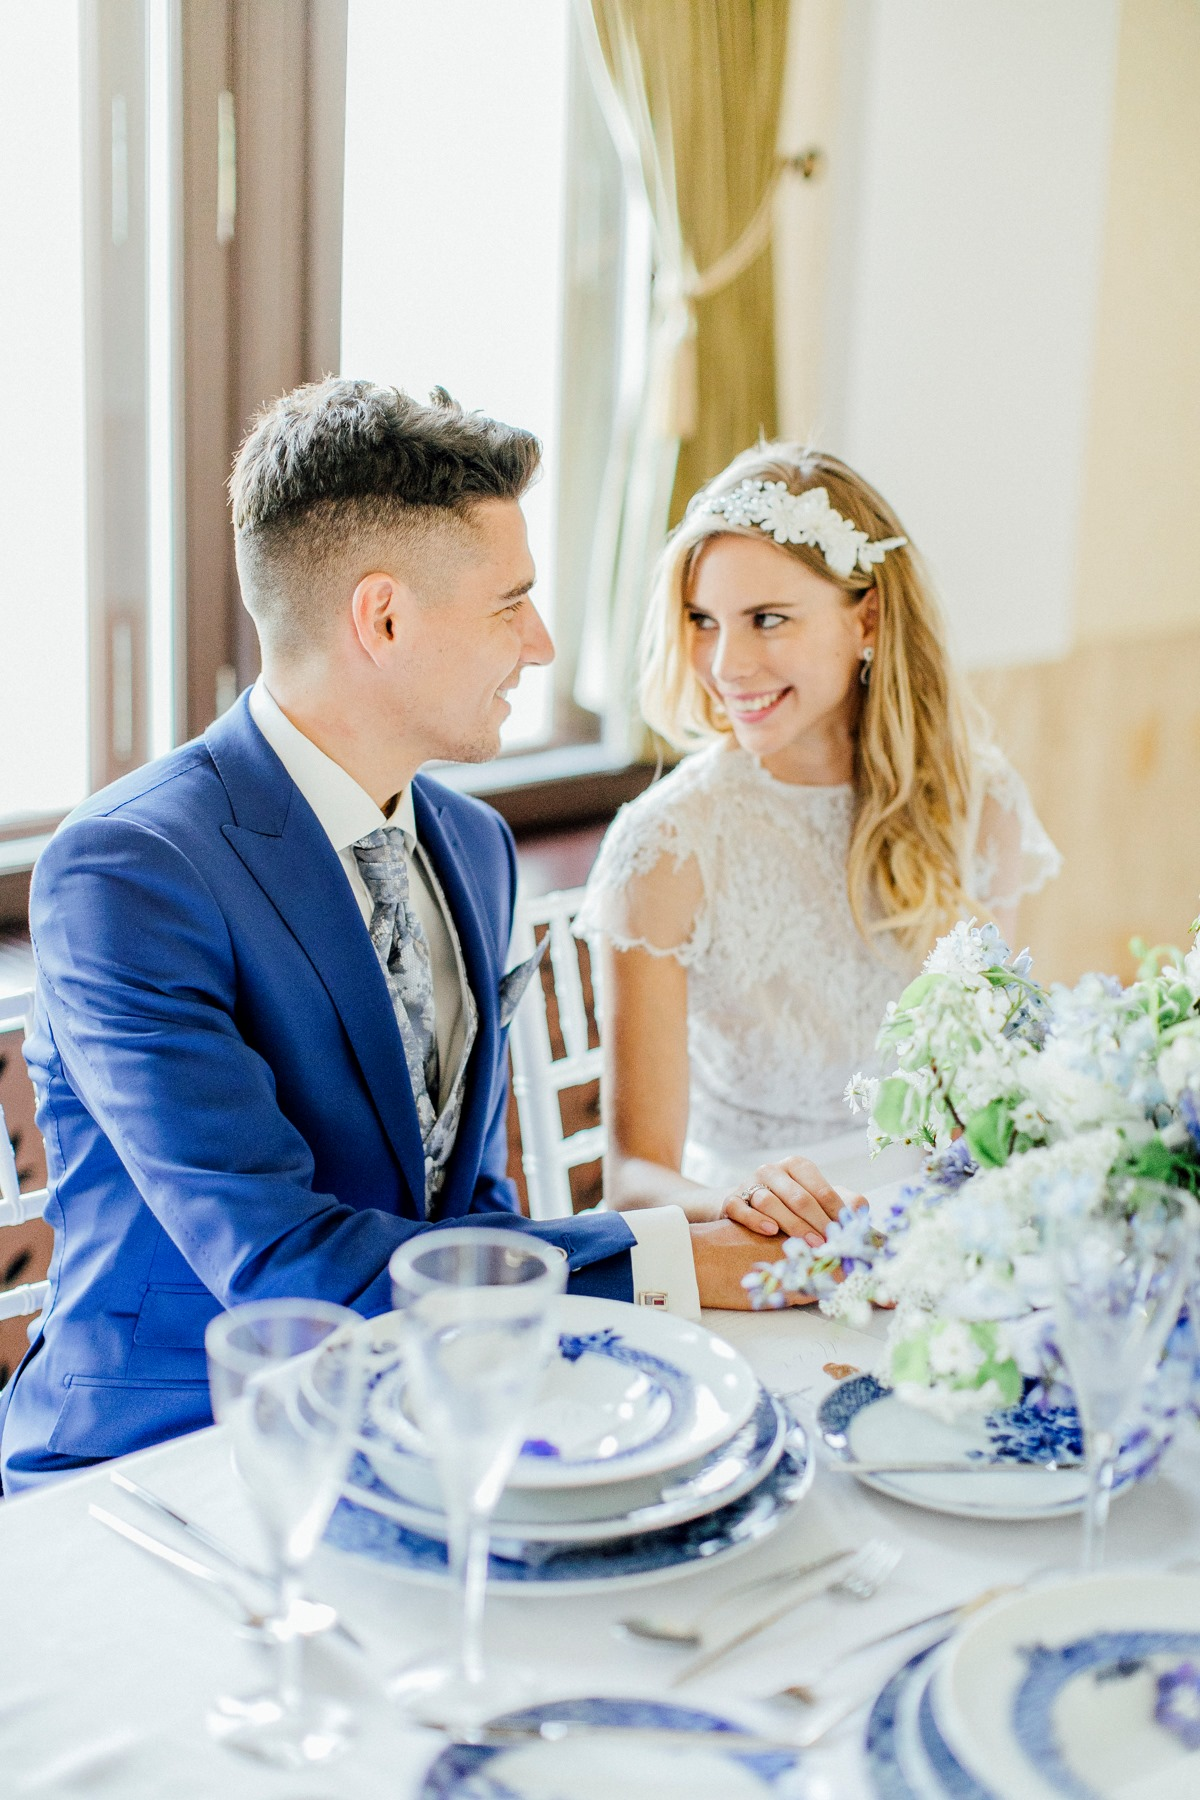 Romantic Budapest wedding inspiration